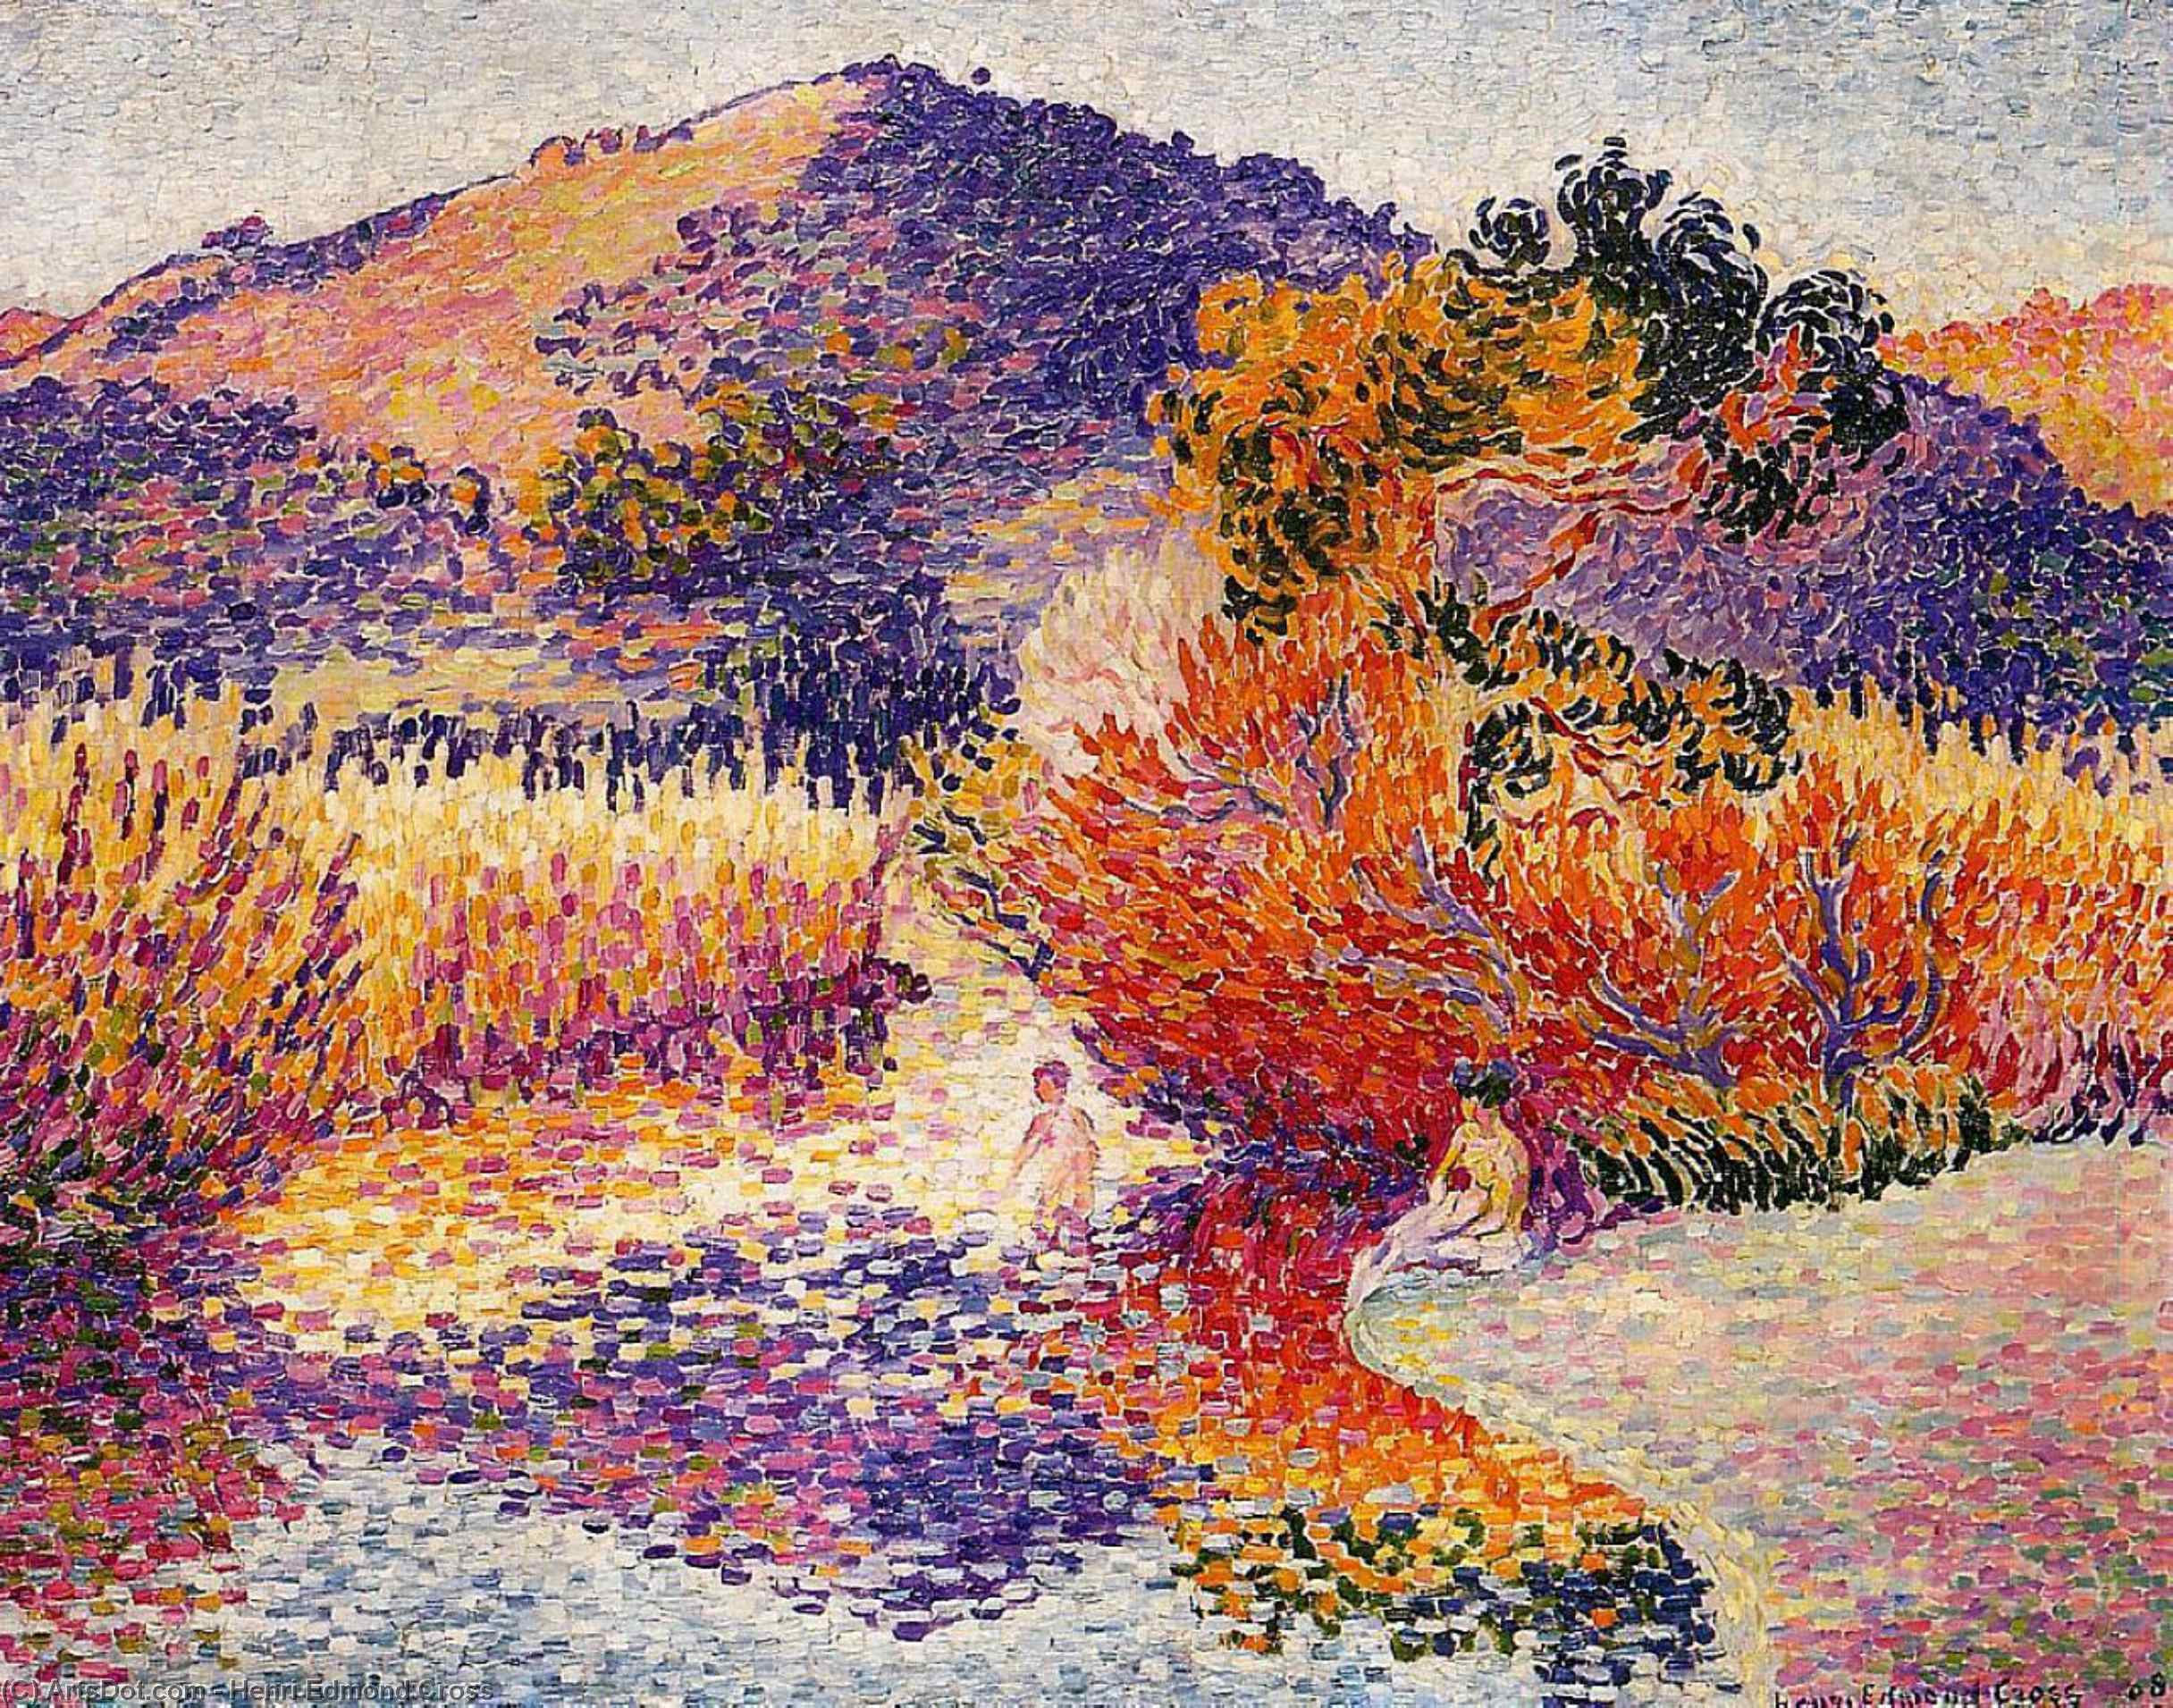 Río en Saint-cir, óleo sobre lienzo de Henri Edmond Cross (1856-1910, France)